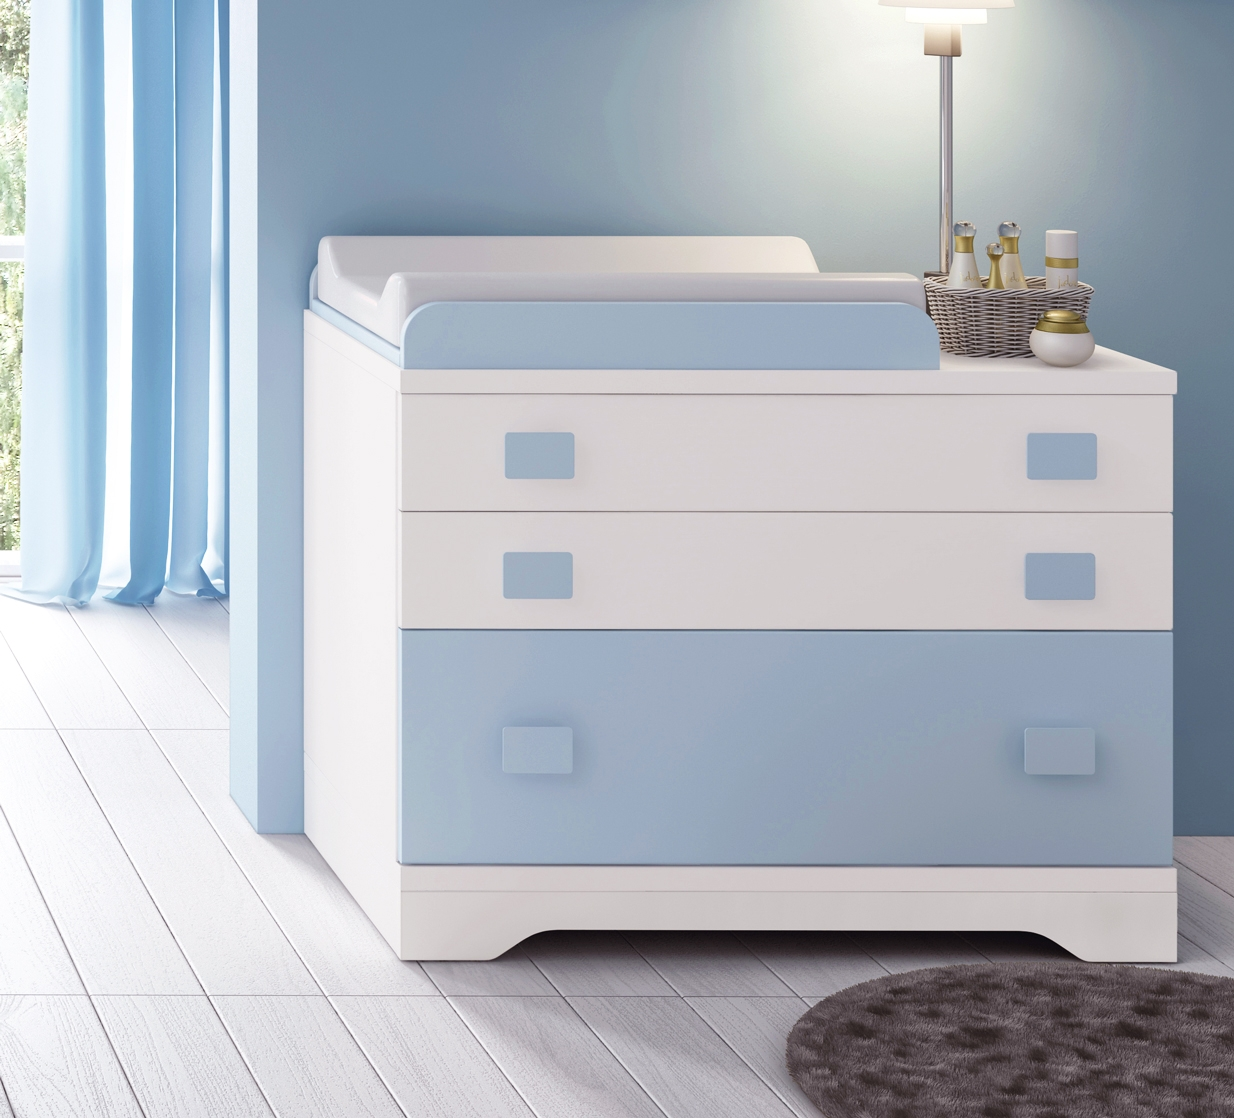 chambre b b gar on compl te gioco blanc et bleu. Black Bedroom Furniture Sets. Home Design Ideas